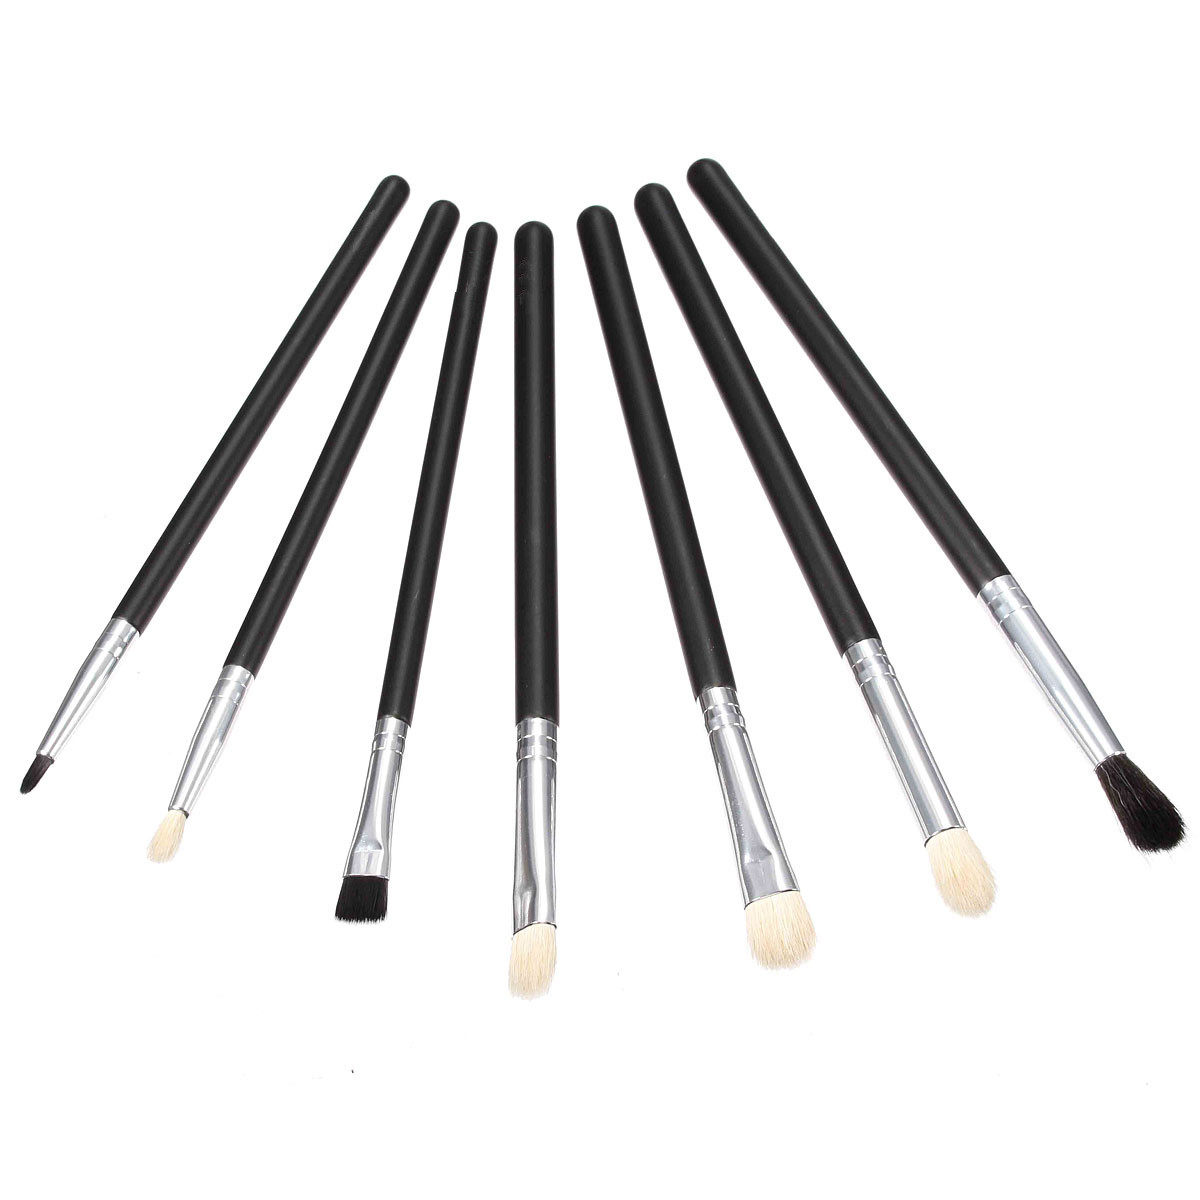 7pcs Eye Shadow Powder Brush Shaping Accurate Eyeliner Brow Makeup Brush Cosmetics Tools Kit